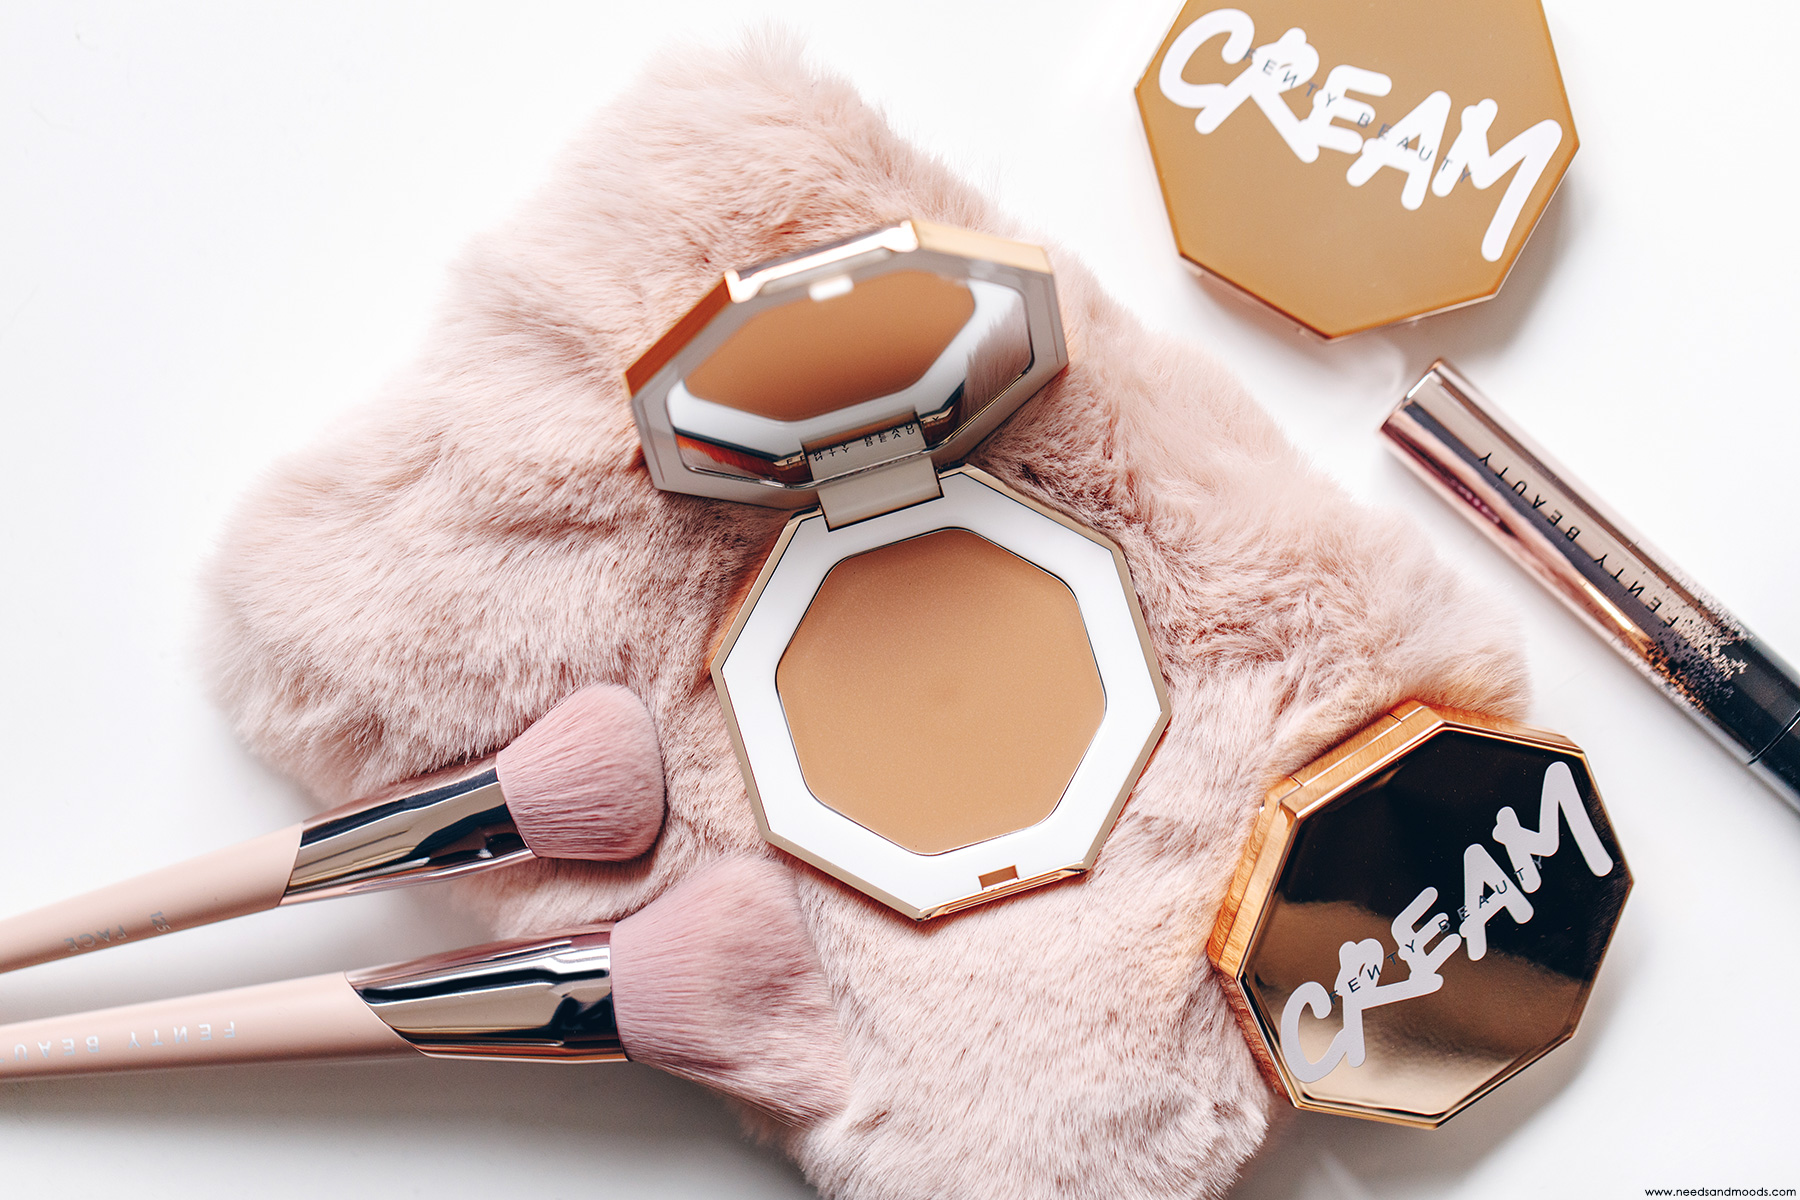 fenty beauty cheeks out freestyle bronzer creme butta biscuit